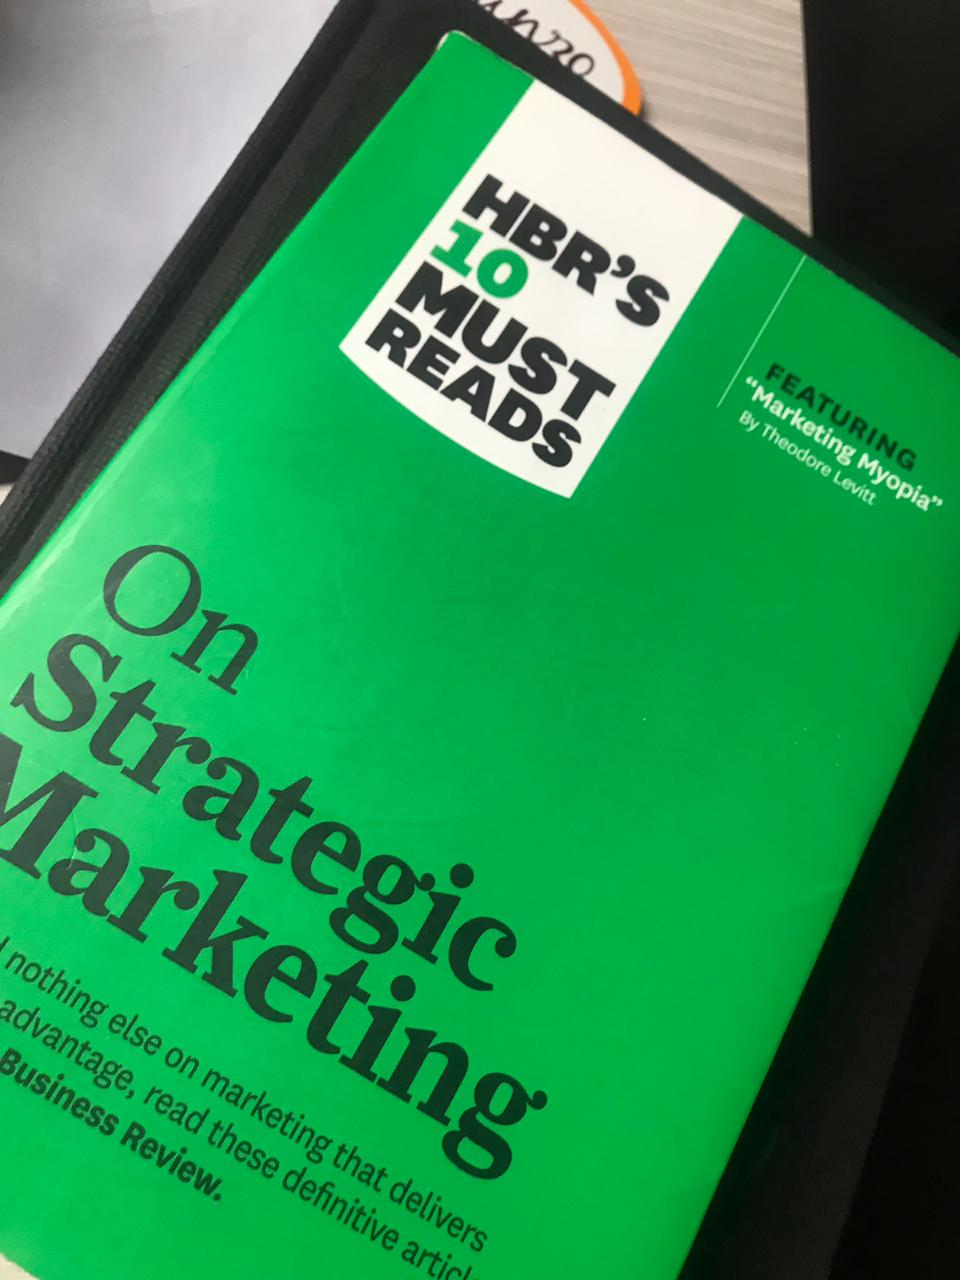 HBS on Strategic marketing